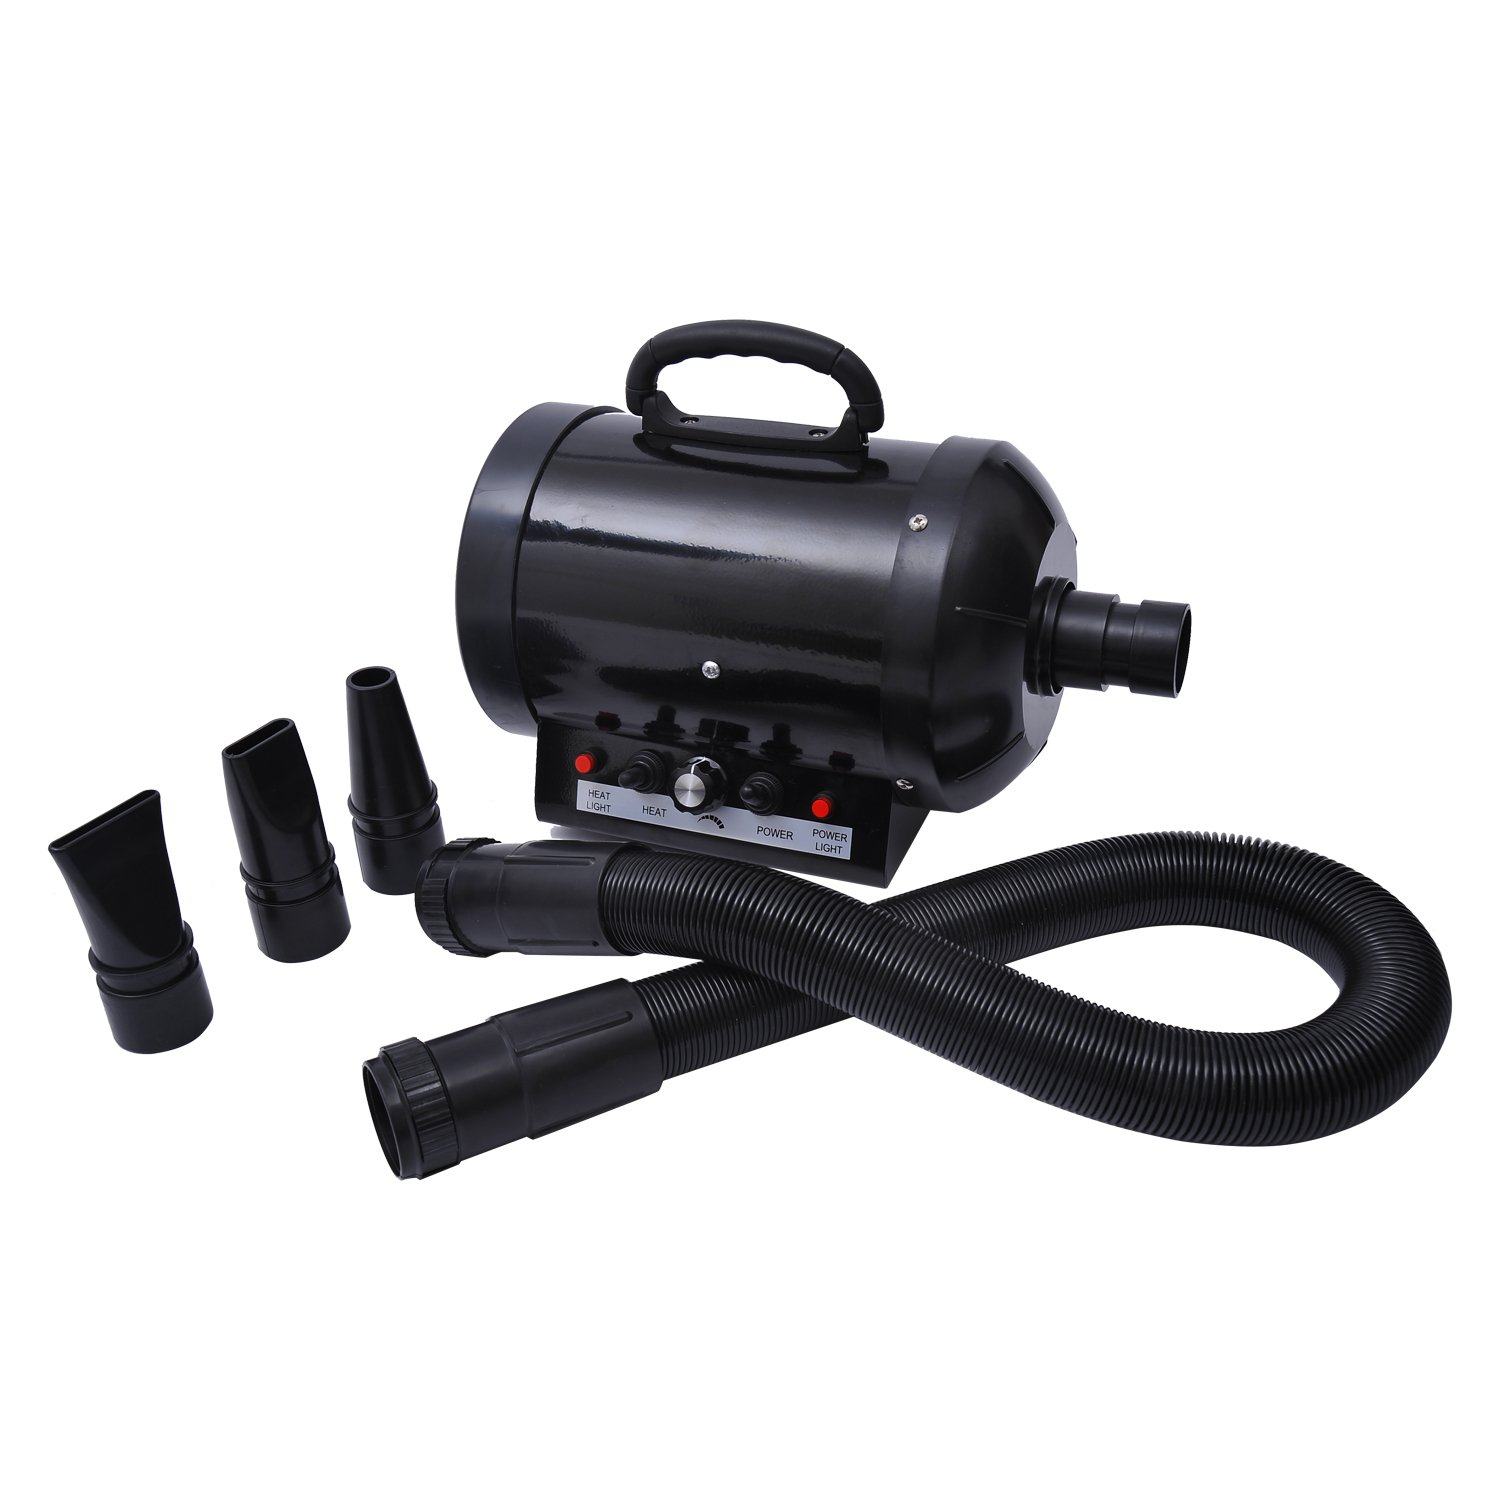 MDOG2 Pet Grooming Hair Dryer for Dogs and Cats, Black